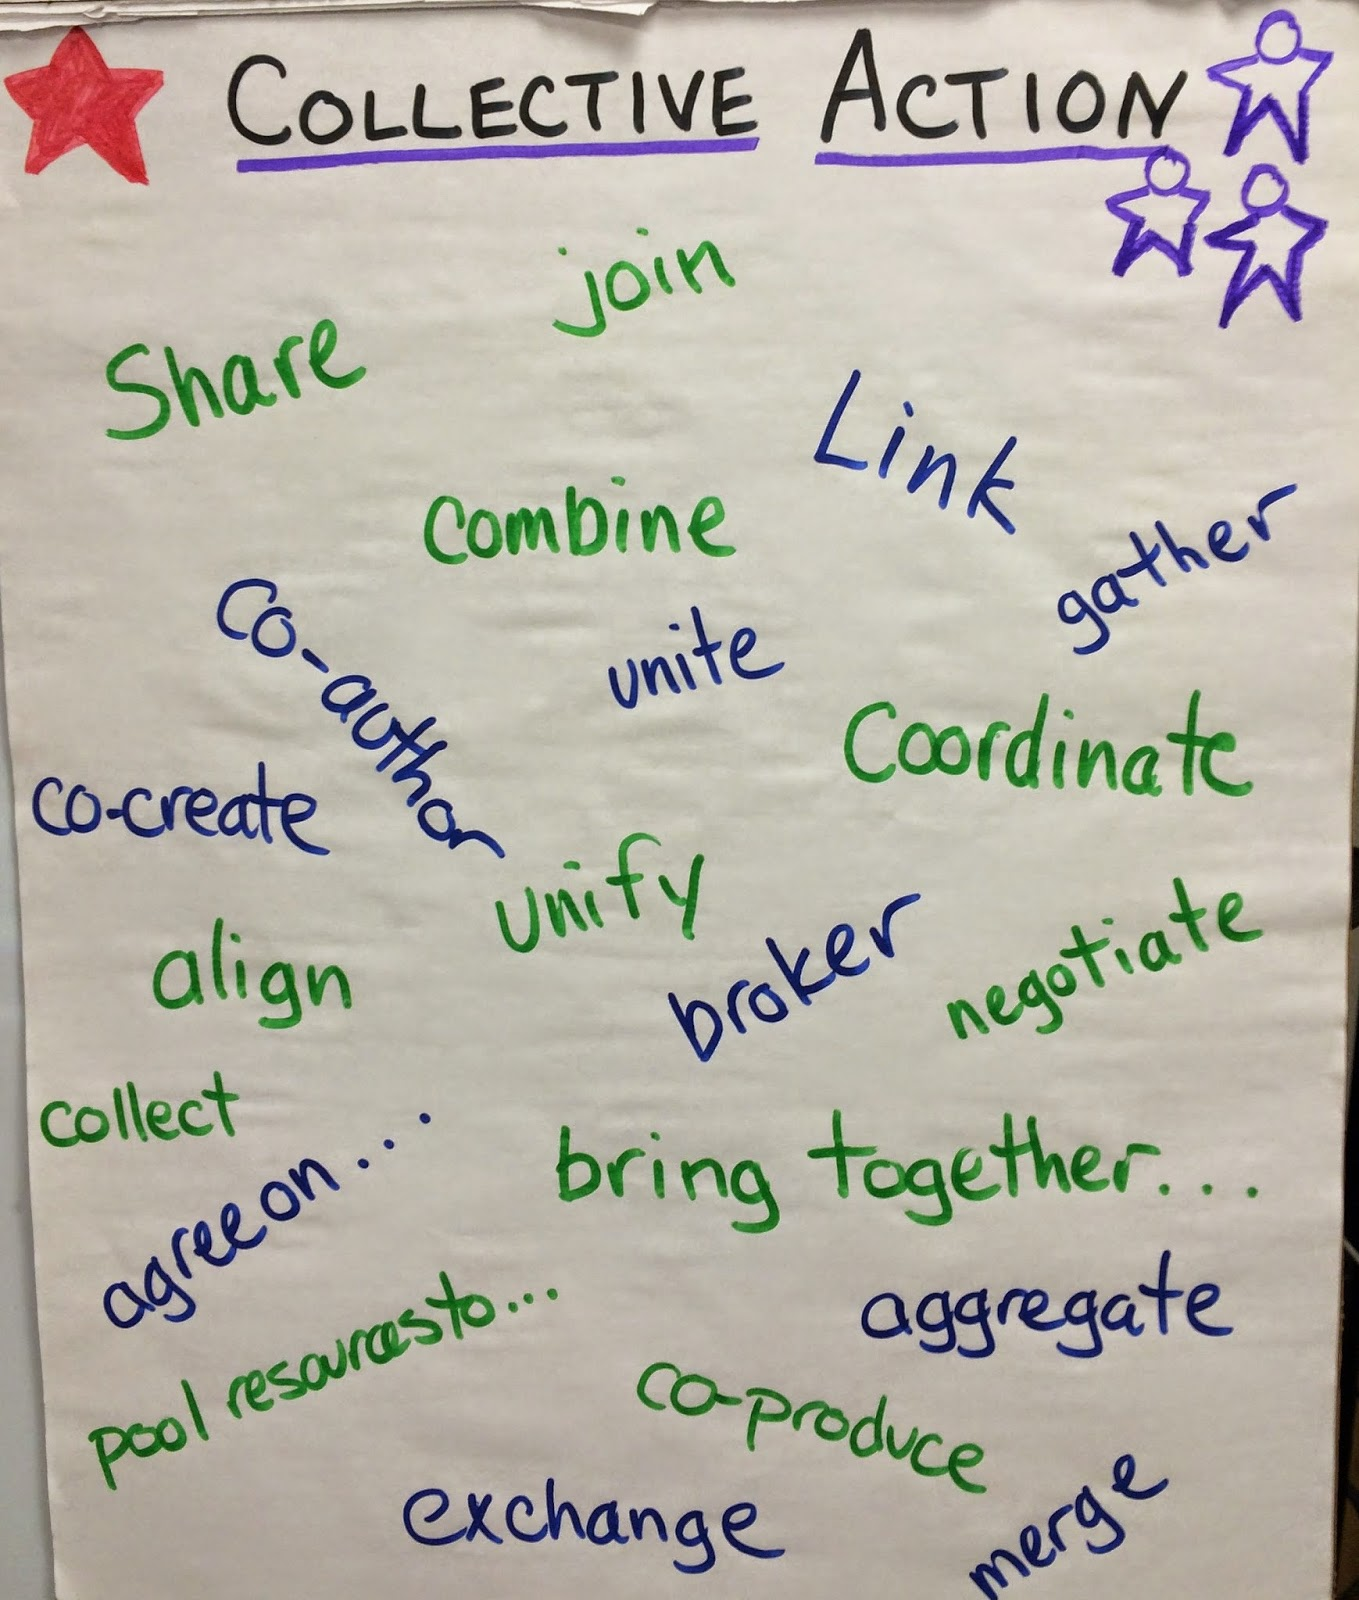 Aging Action Initiative Second Workgroup - Action Idea Brainstorm Interview Directions